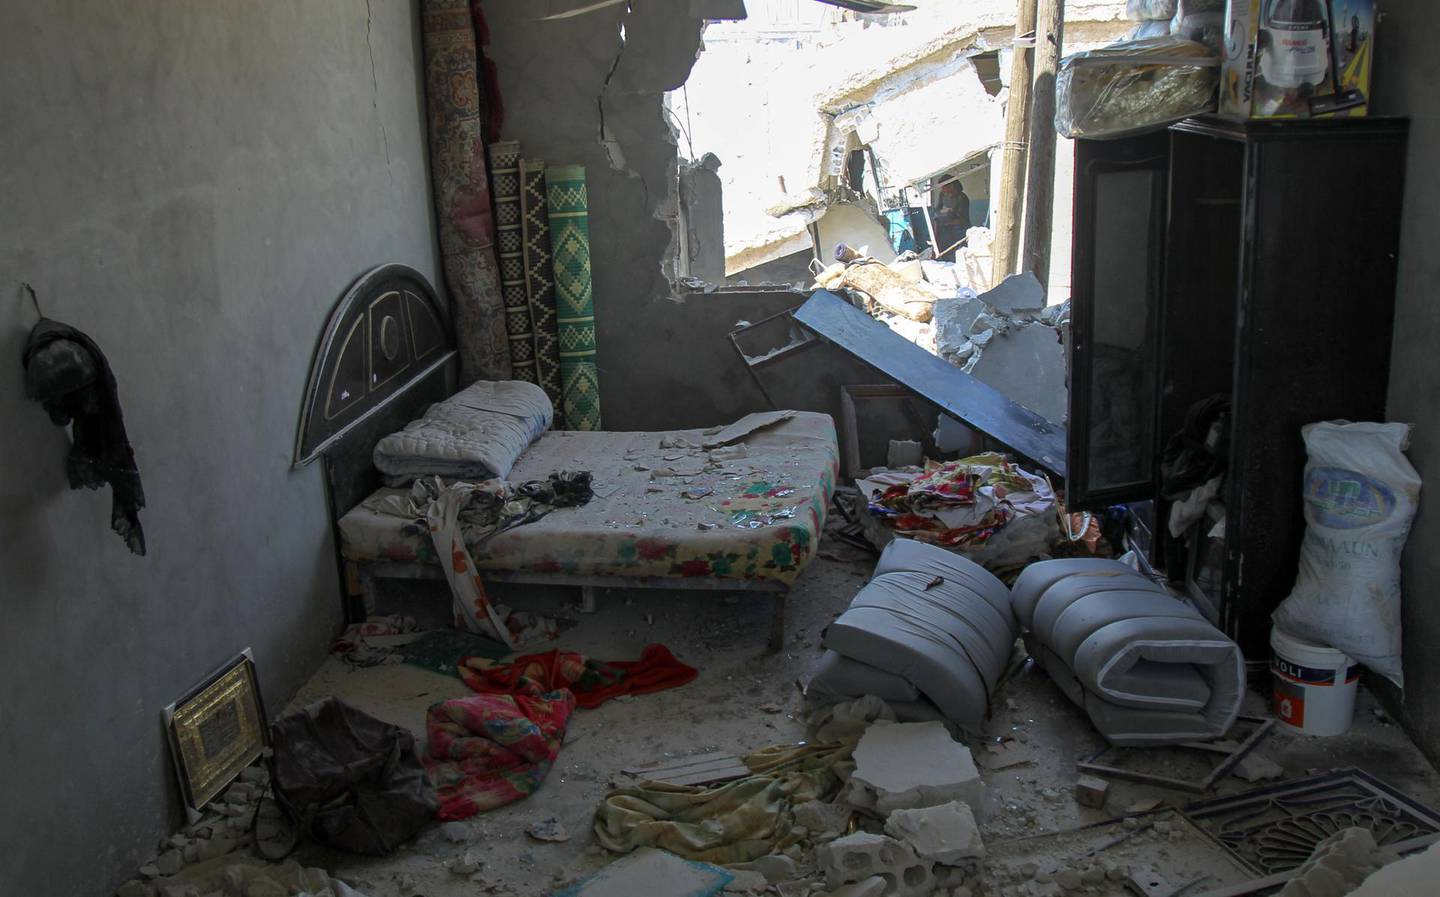 A bedroom damaged during airstrikess by the Syrian regime and their allies is pictured near the town of Saraqeb in Syria's rebel-held northwestern province of Idlib on May 7, 2019.  Air strikes and shelling killed 13 civilians in northwestern Syria today, a monitor said, in the latest escalation to rattle a months-old truce and spark displacement. / AFP / Amer ALHAMWE